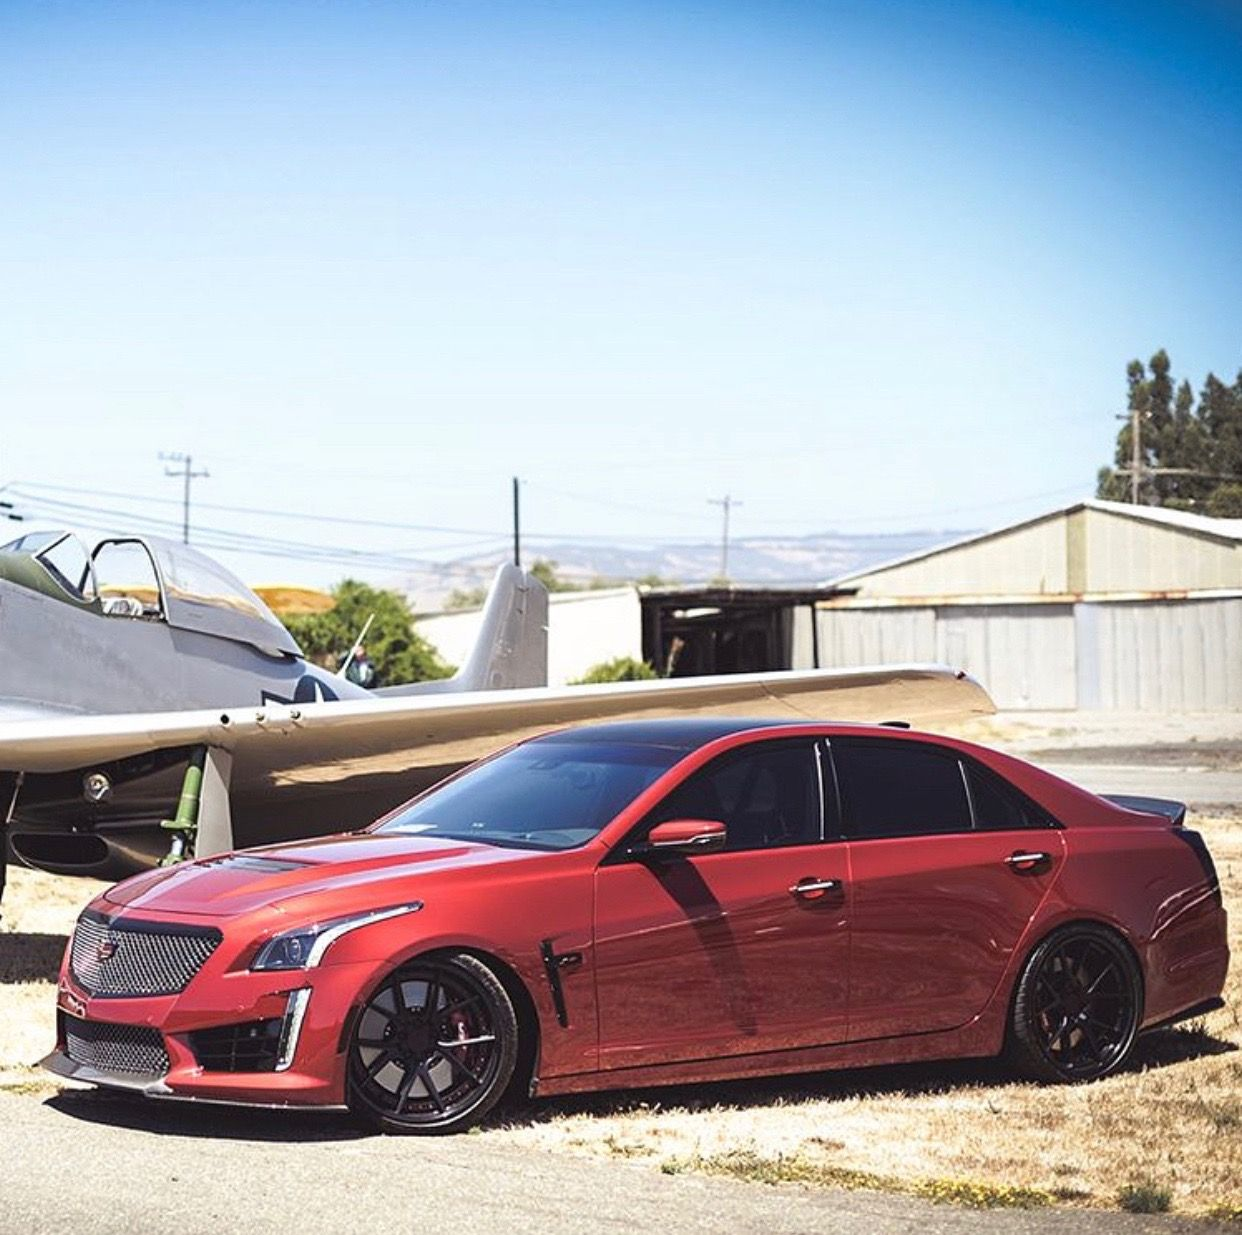 Cadillac CTS V Painted In Red Obsession Tintcoat Photo